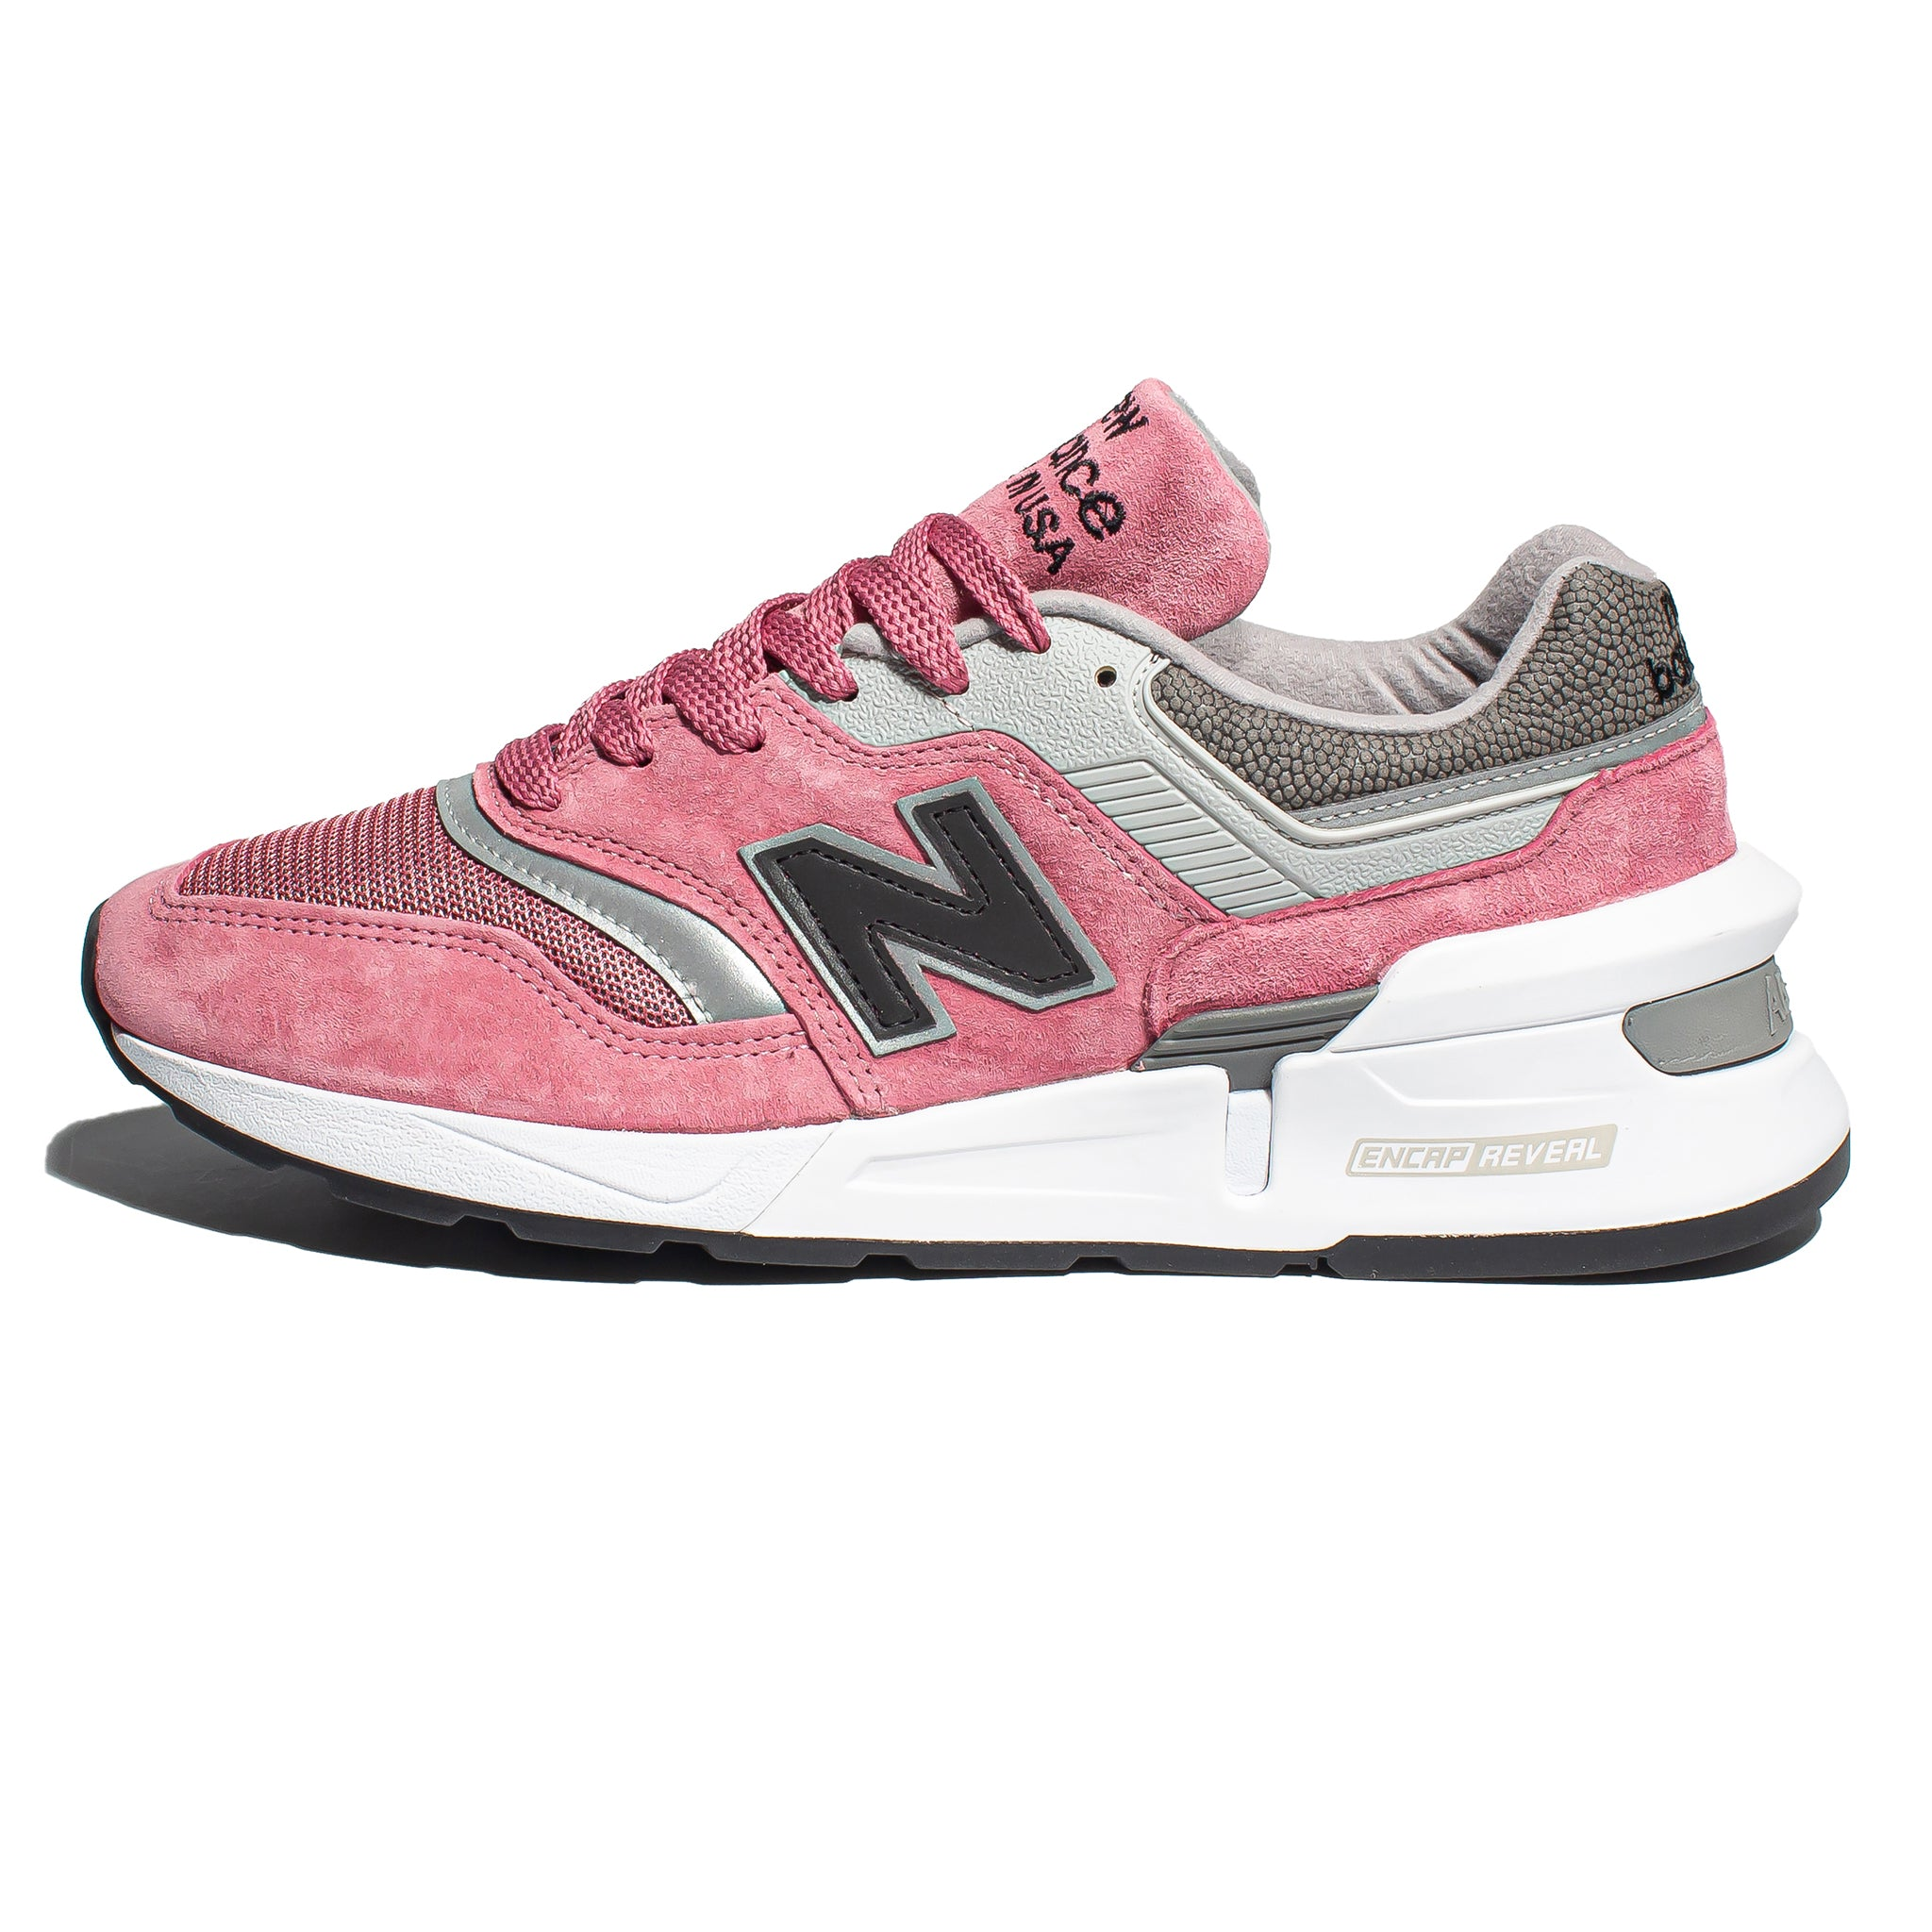 New Balance 'Made in USA' M997SPG